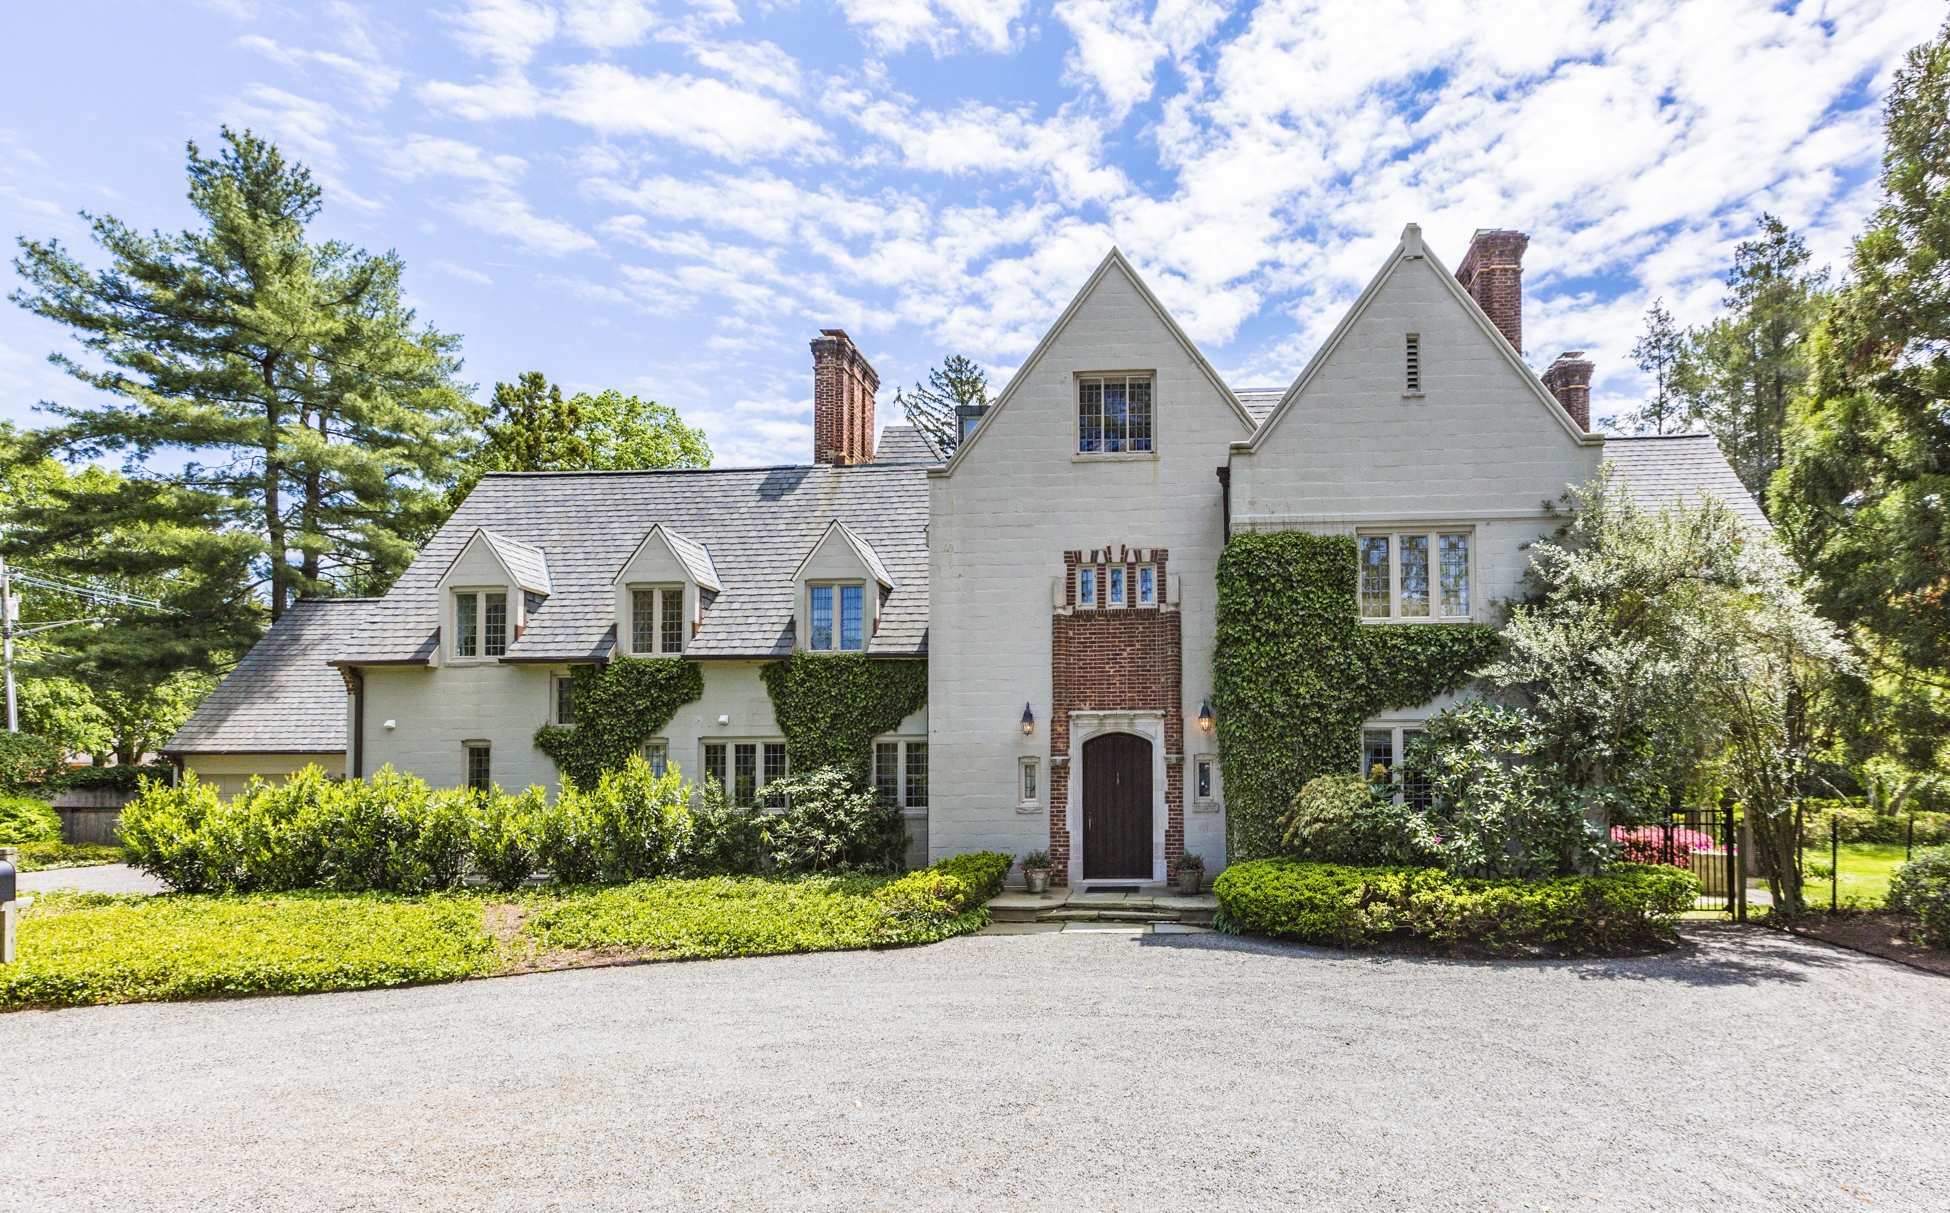 Single Family Home for Sale at Normandy-inspired Manor in Princeton 114 Elm Road Princeton, New Jersey, 08540 United States